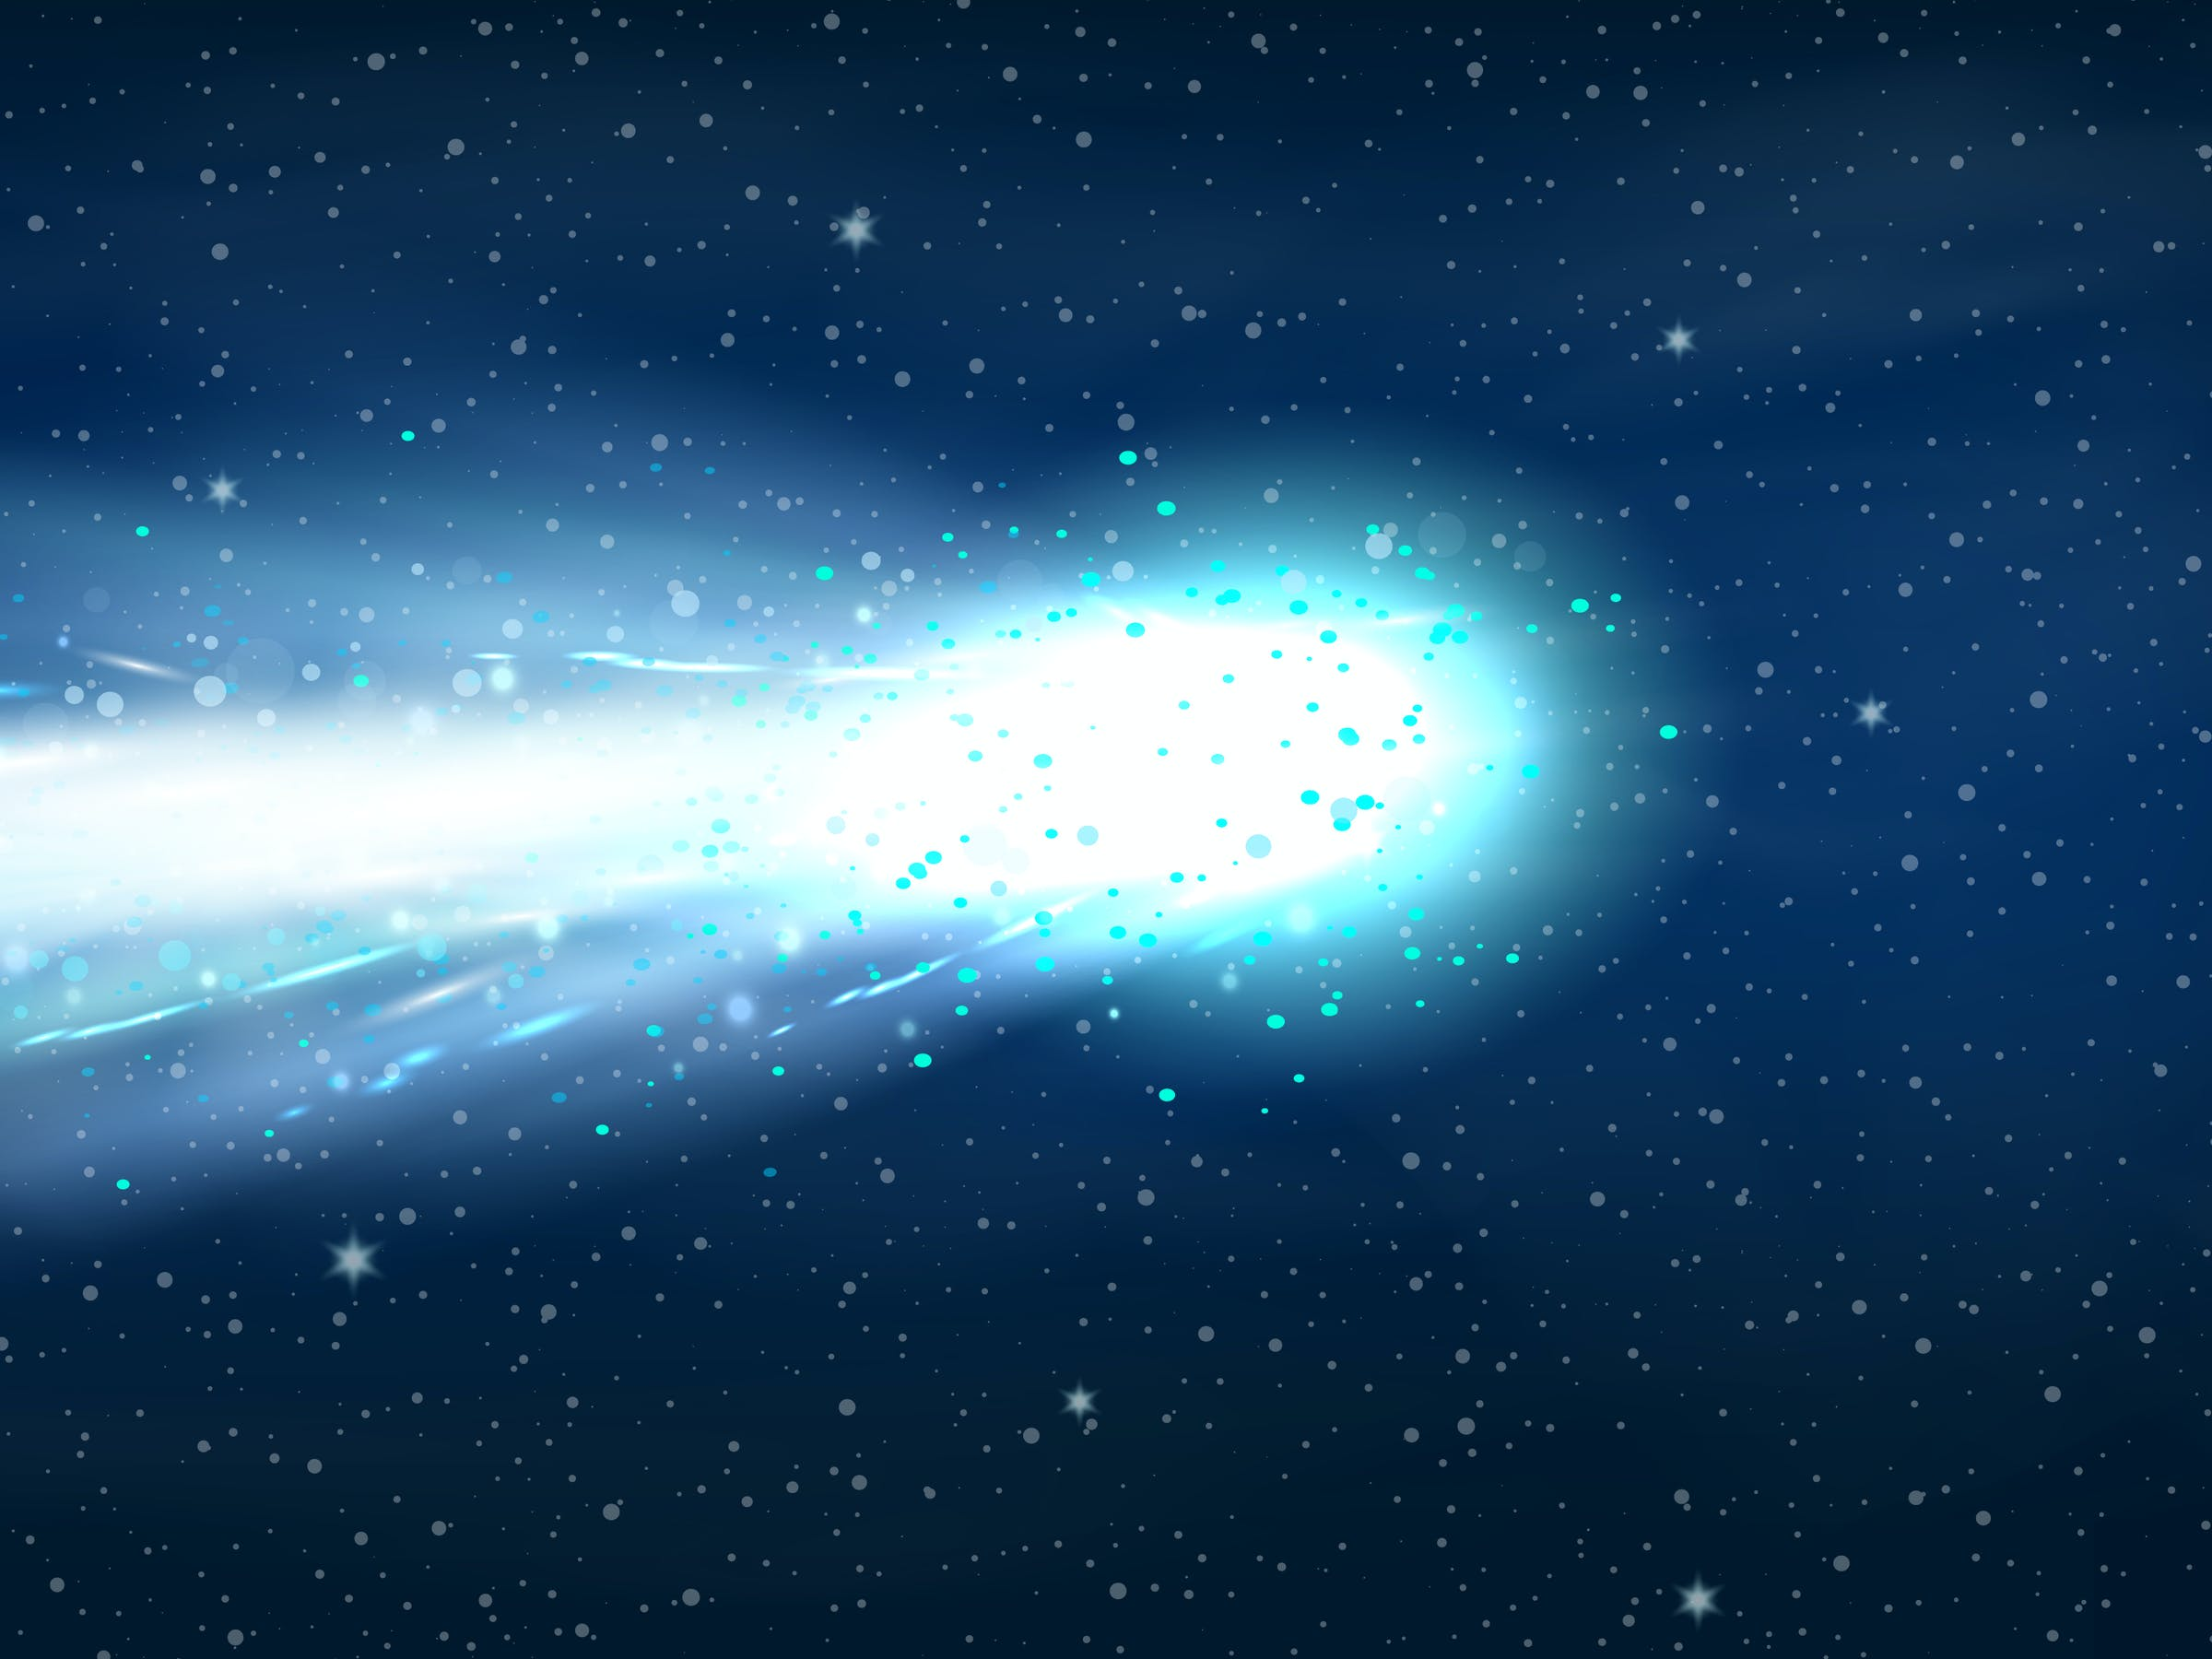 An artist's rendition of a comet, with a tail of gas and dust behind it.